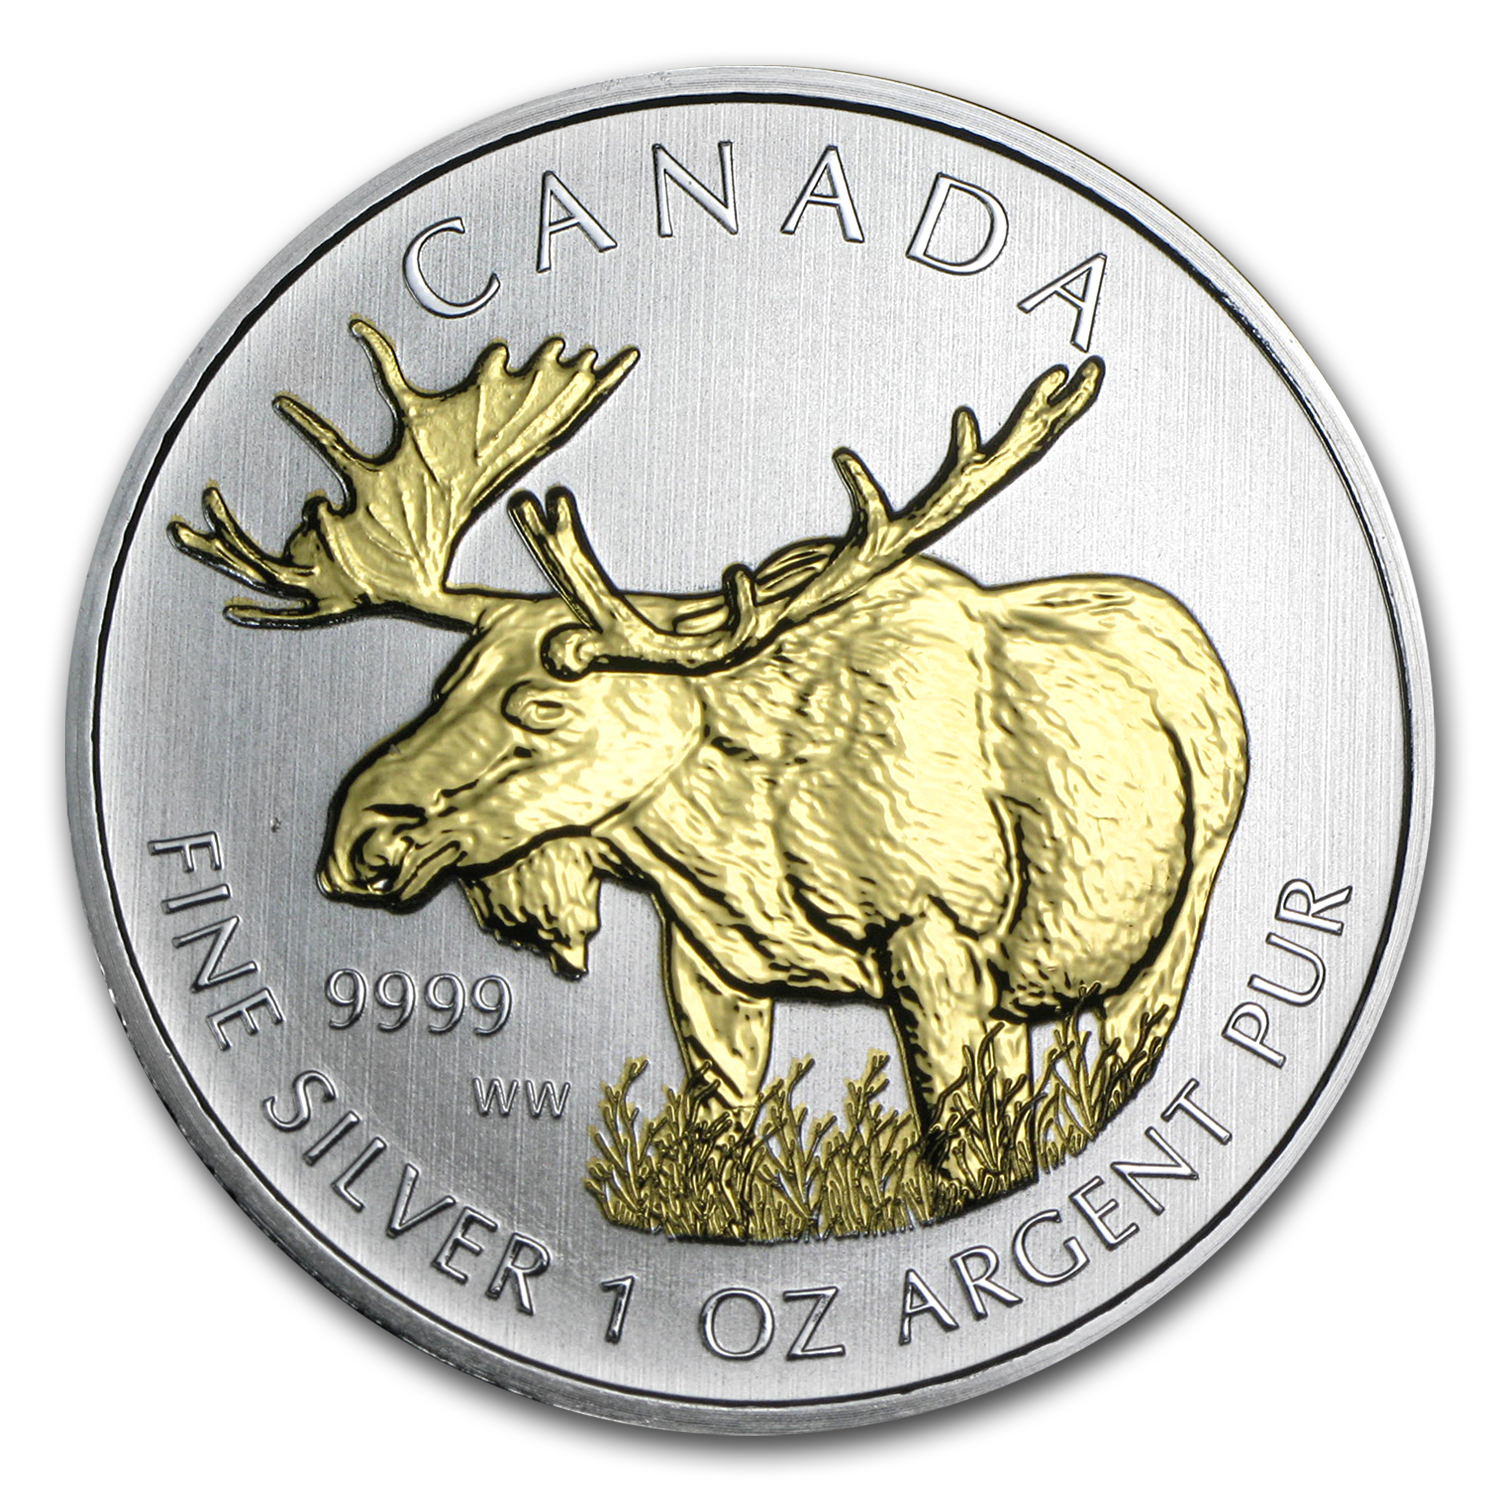 2012 Canada 1 oz Silver Wildlife Series Moose (Gilded)